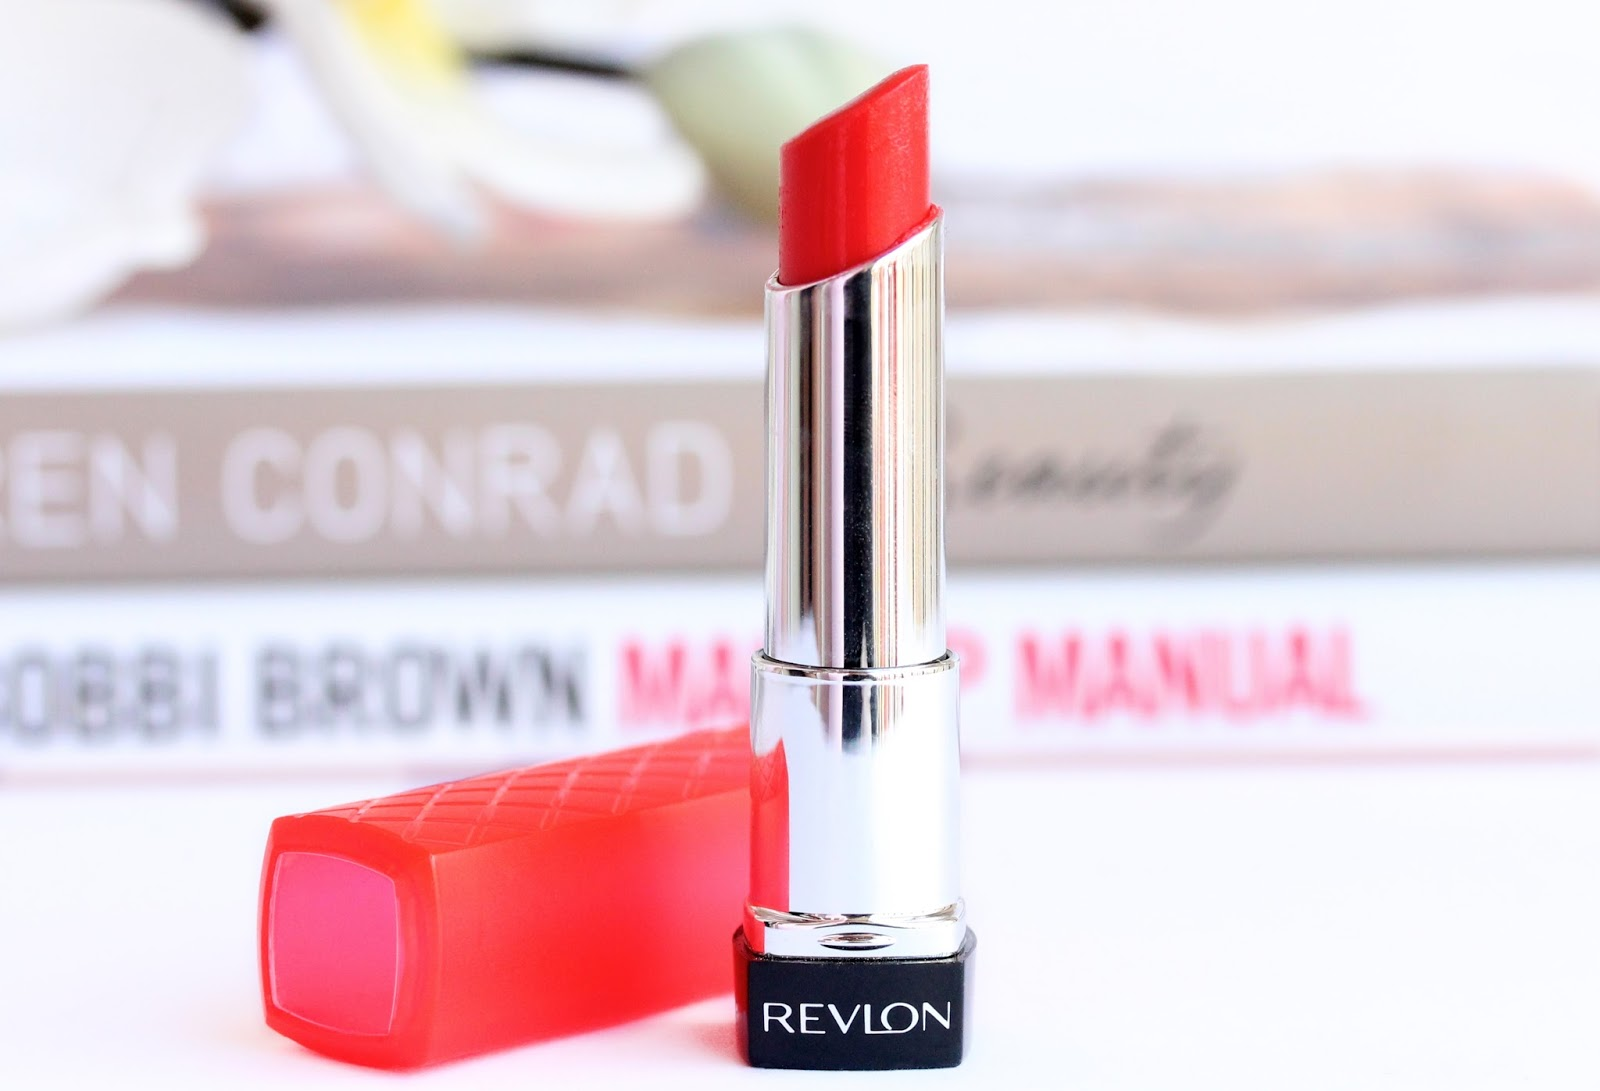 Revlon Lip Butter in Wild Watermelon